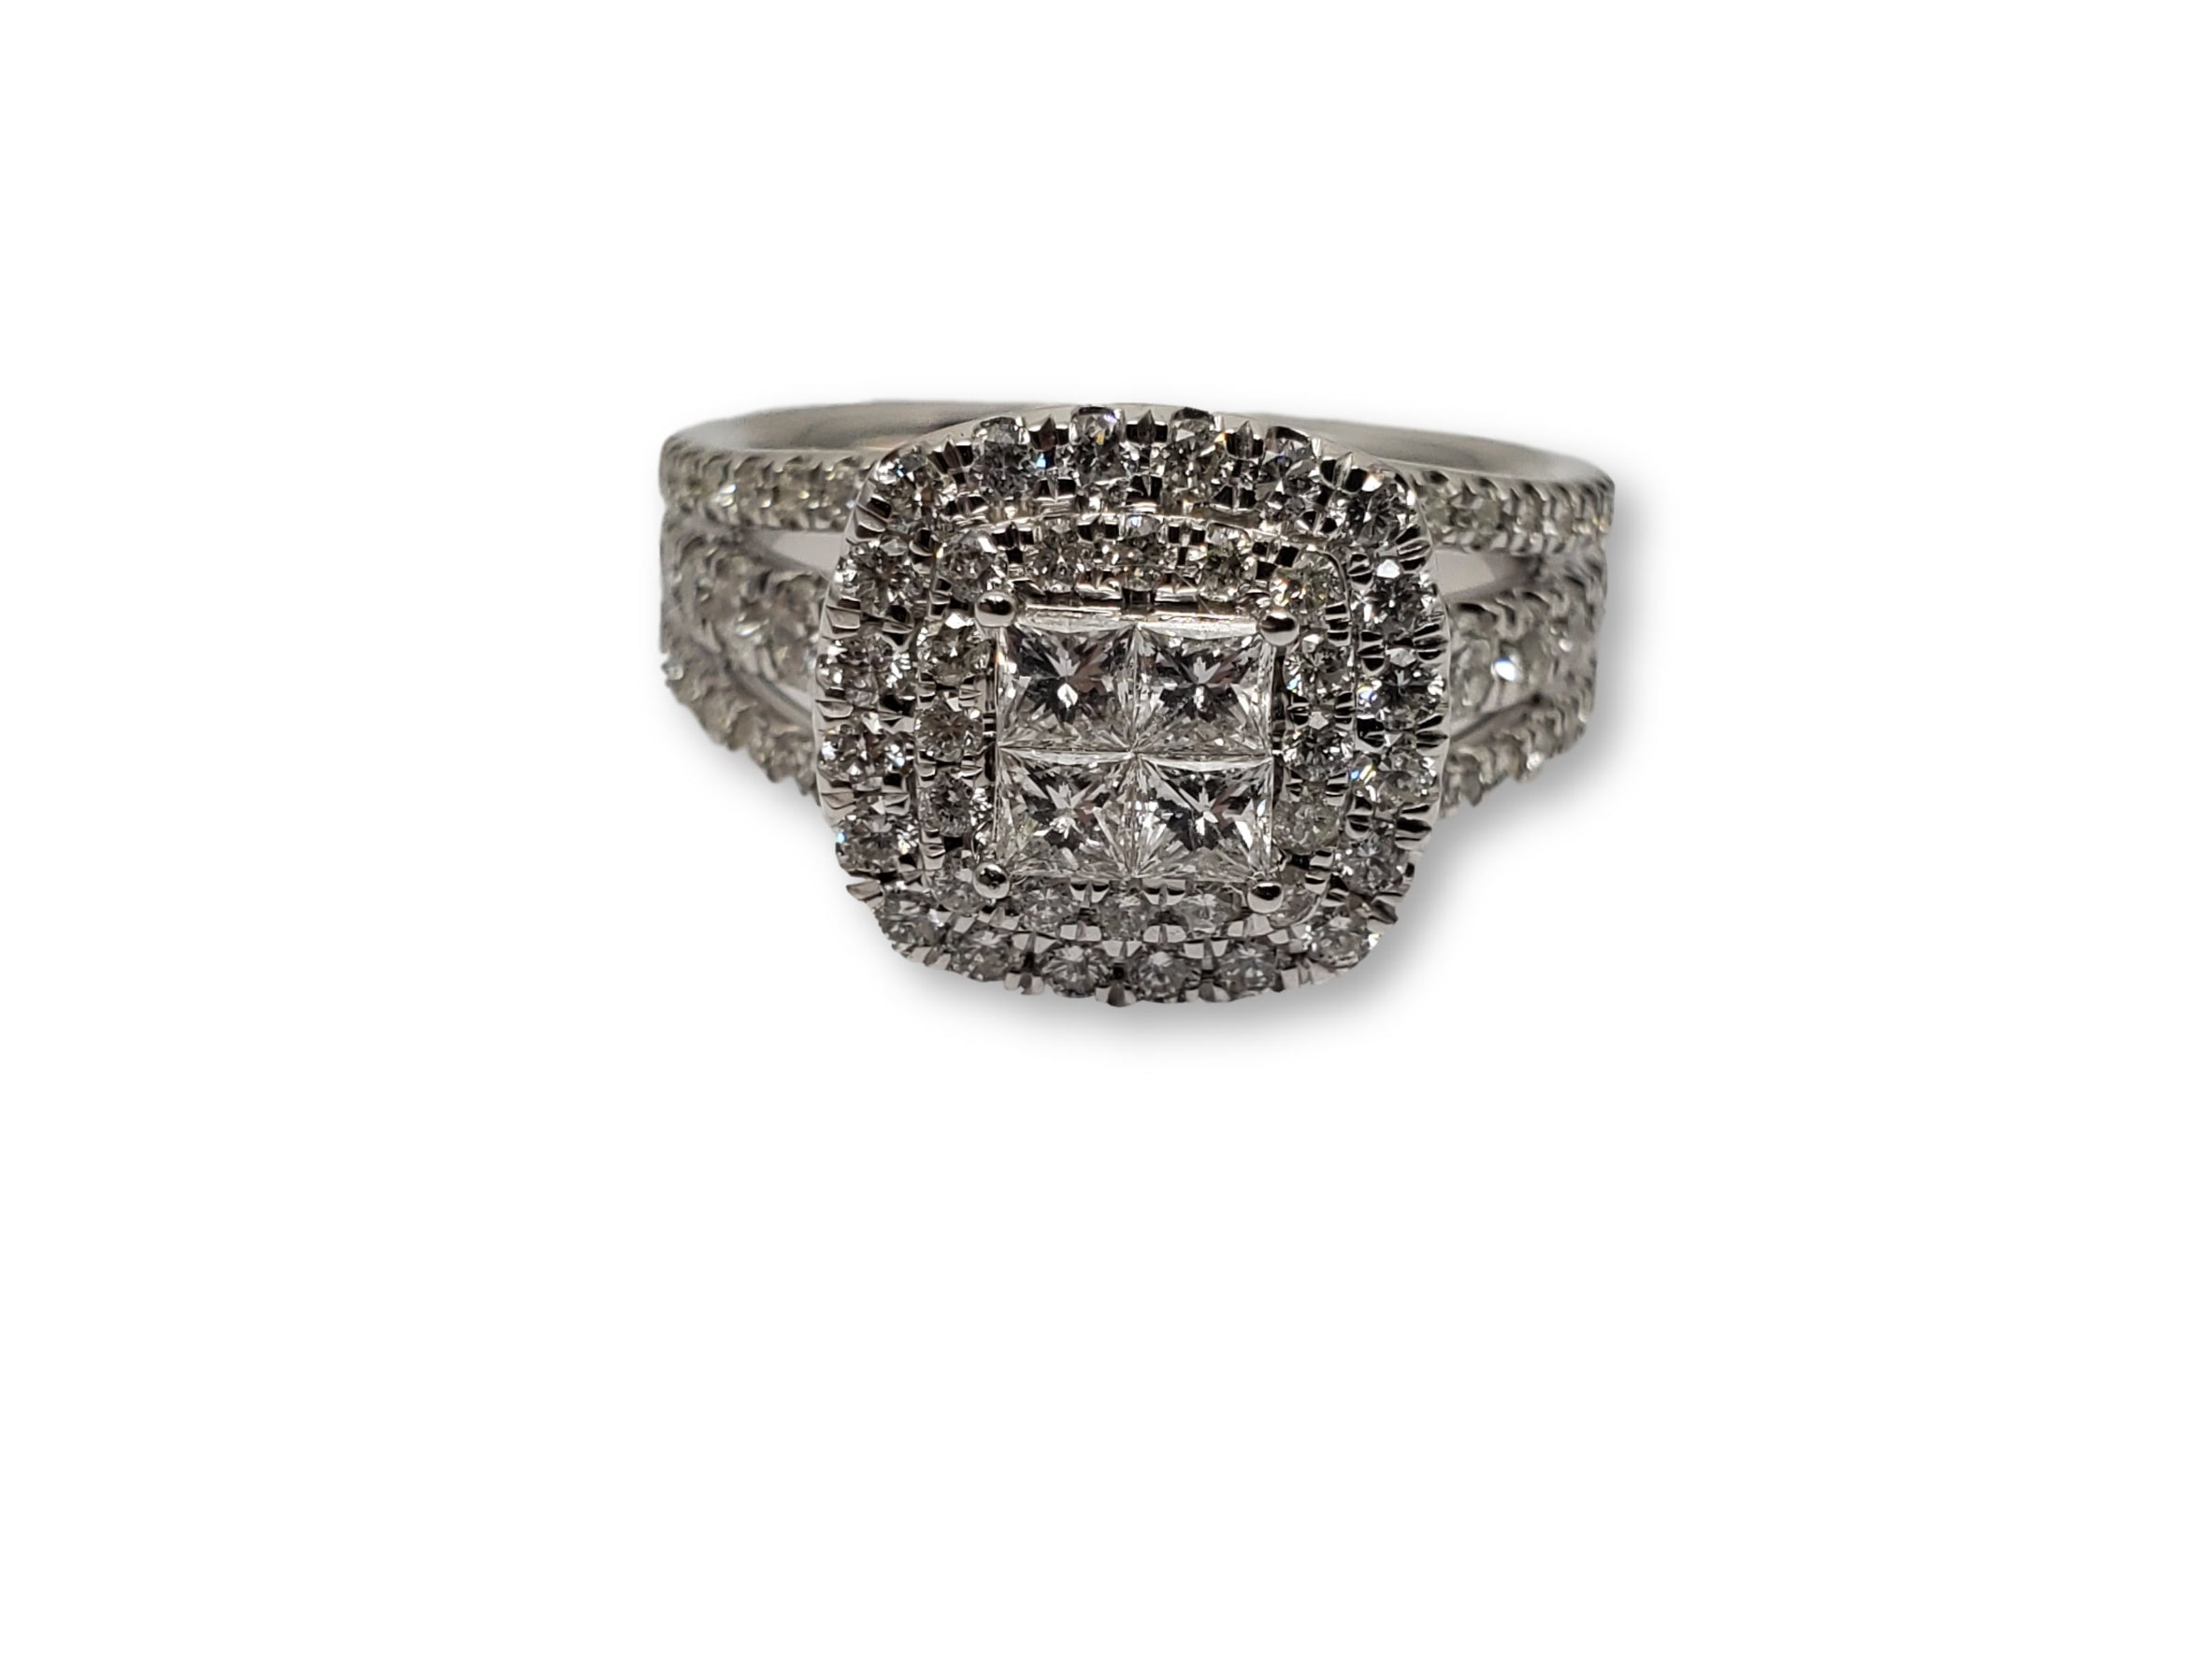 Bague Luckyy 1.50ct de diamants en or blanc 10k